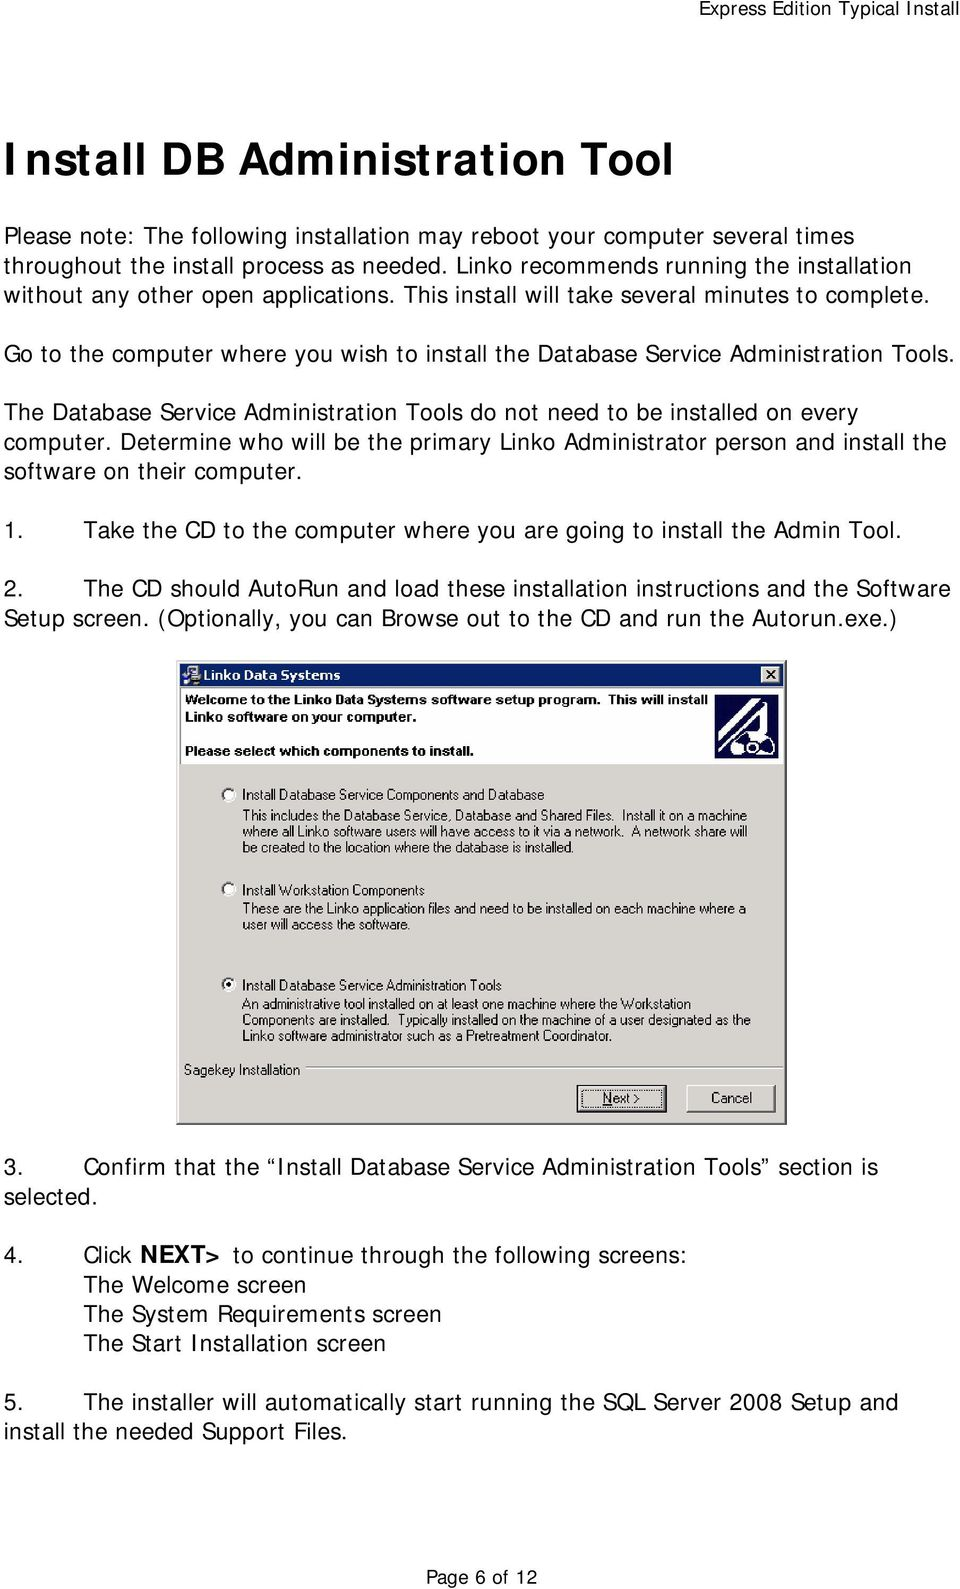 Go to the computer where you wish to install the Database Service Administration Tools. The Database Service Administration Tools do not need to be installed on every computer.